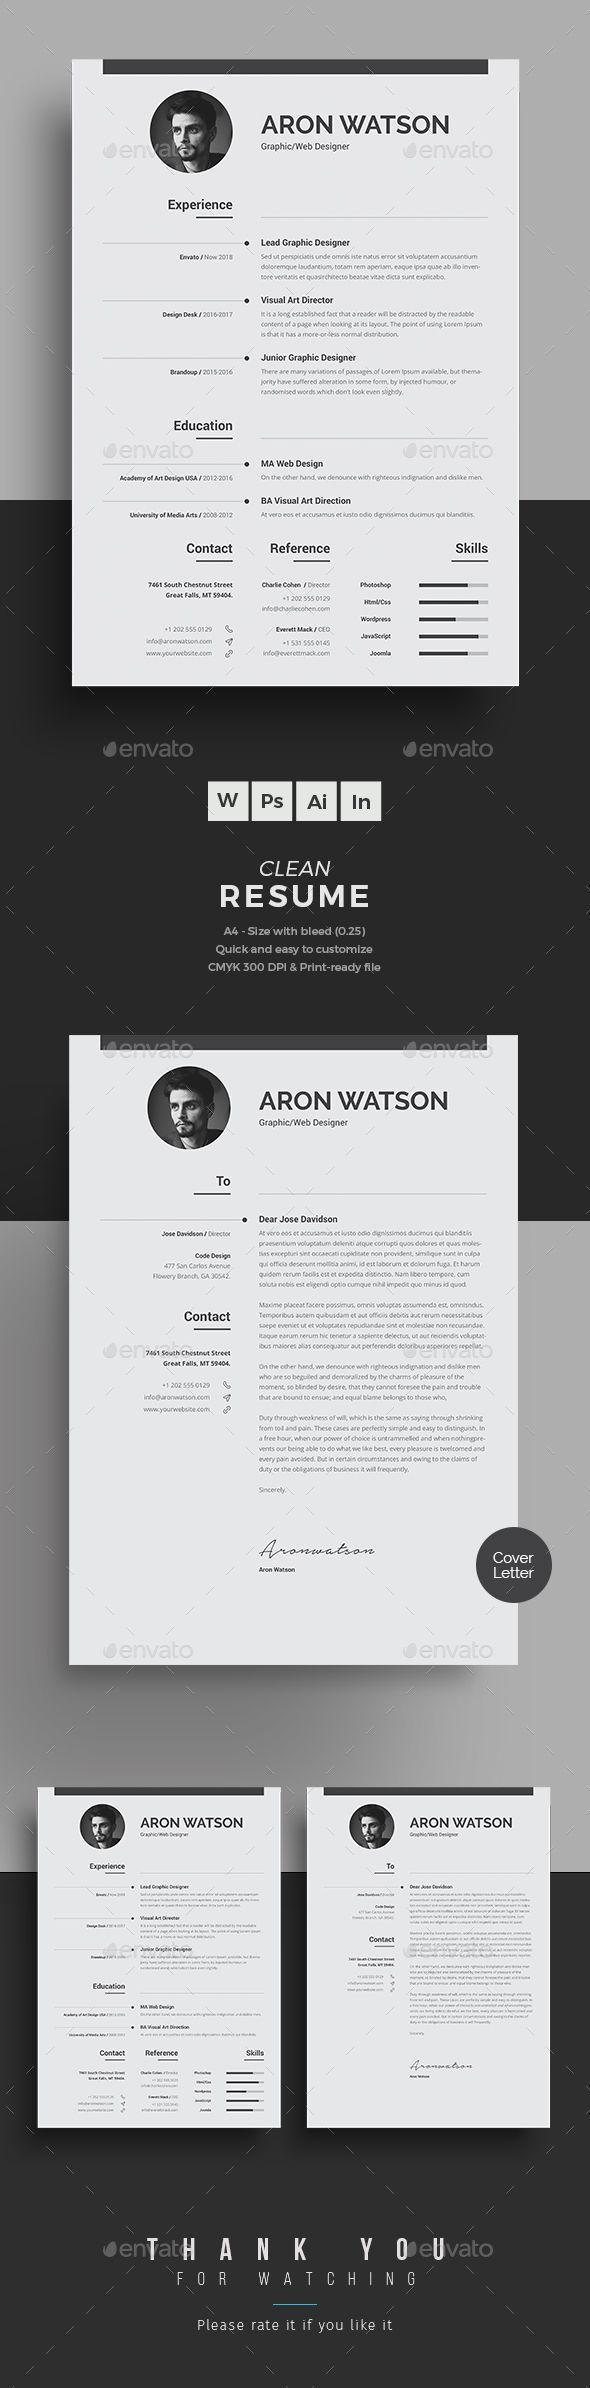 Simple Resume Design with matching cover letter